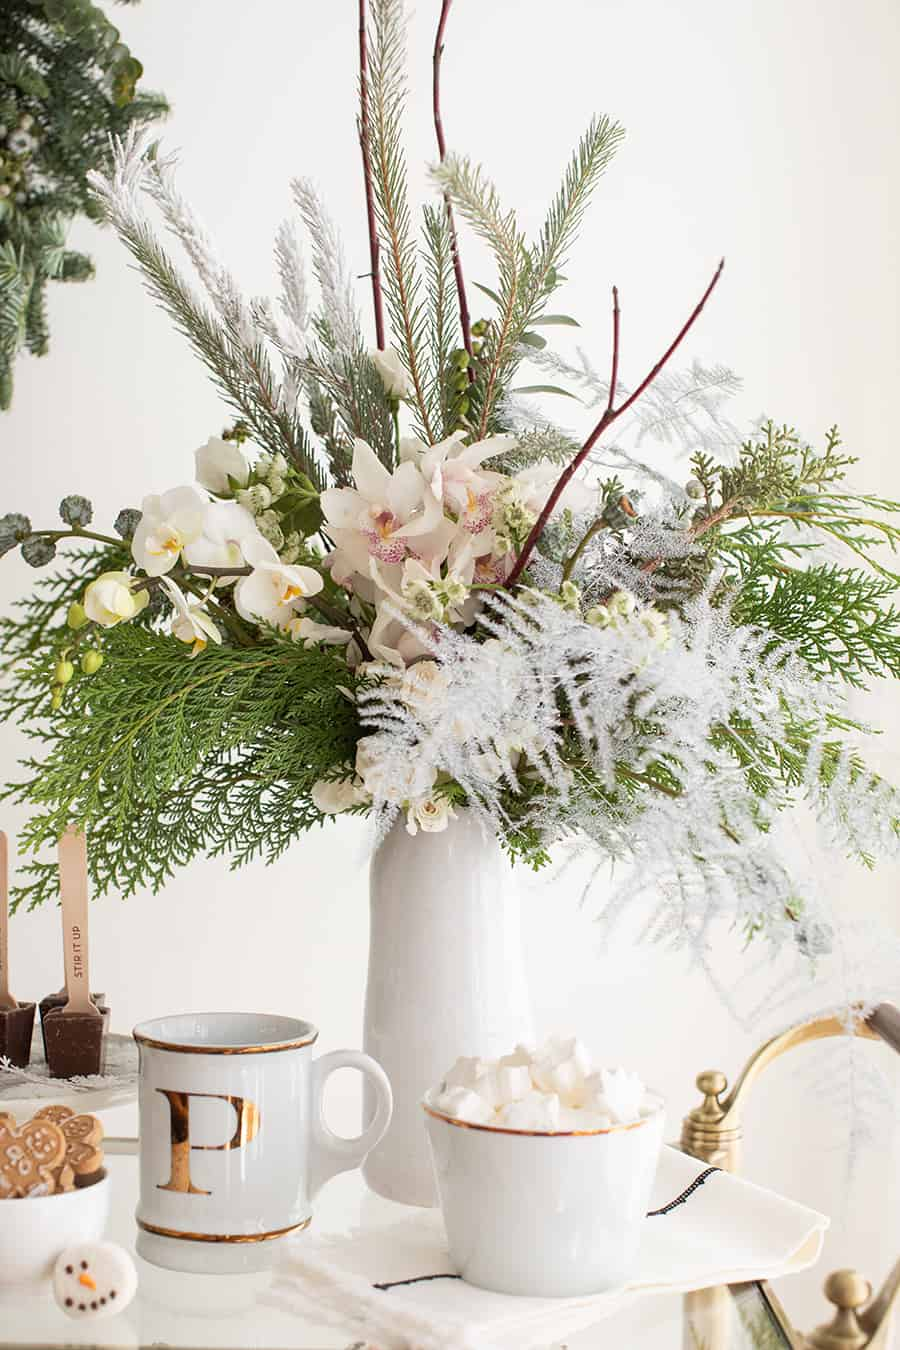 Winter floral arrangements